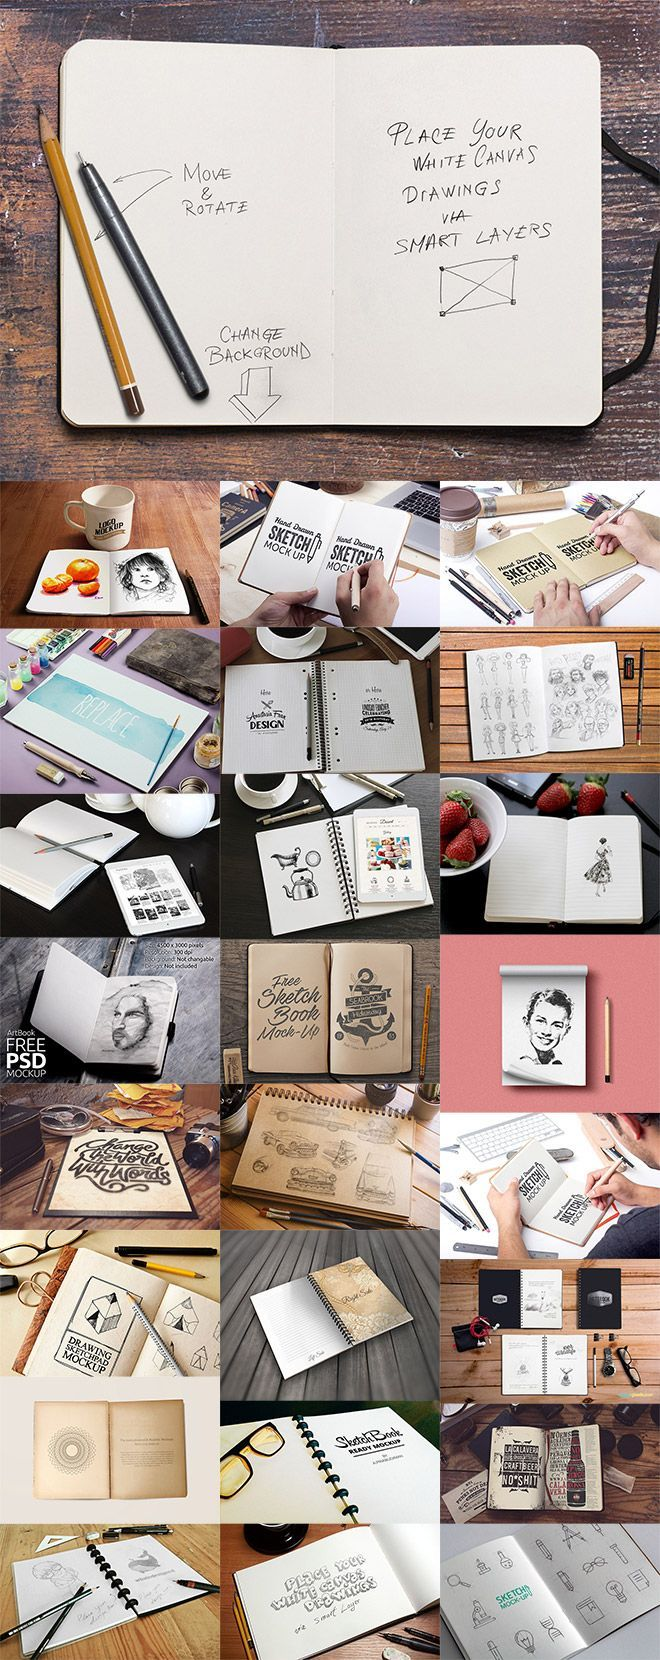 25 Free Psd Templates To Mockup Your Sketches Drawings Psd Template Free Sketch Book Design Tutorials